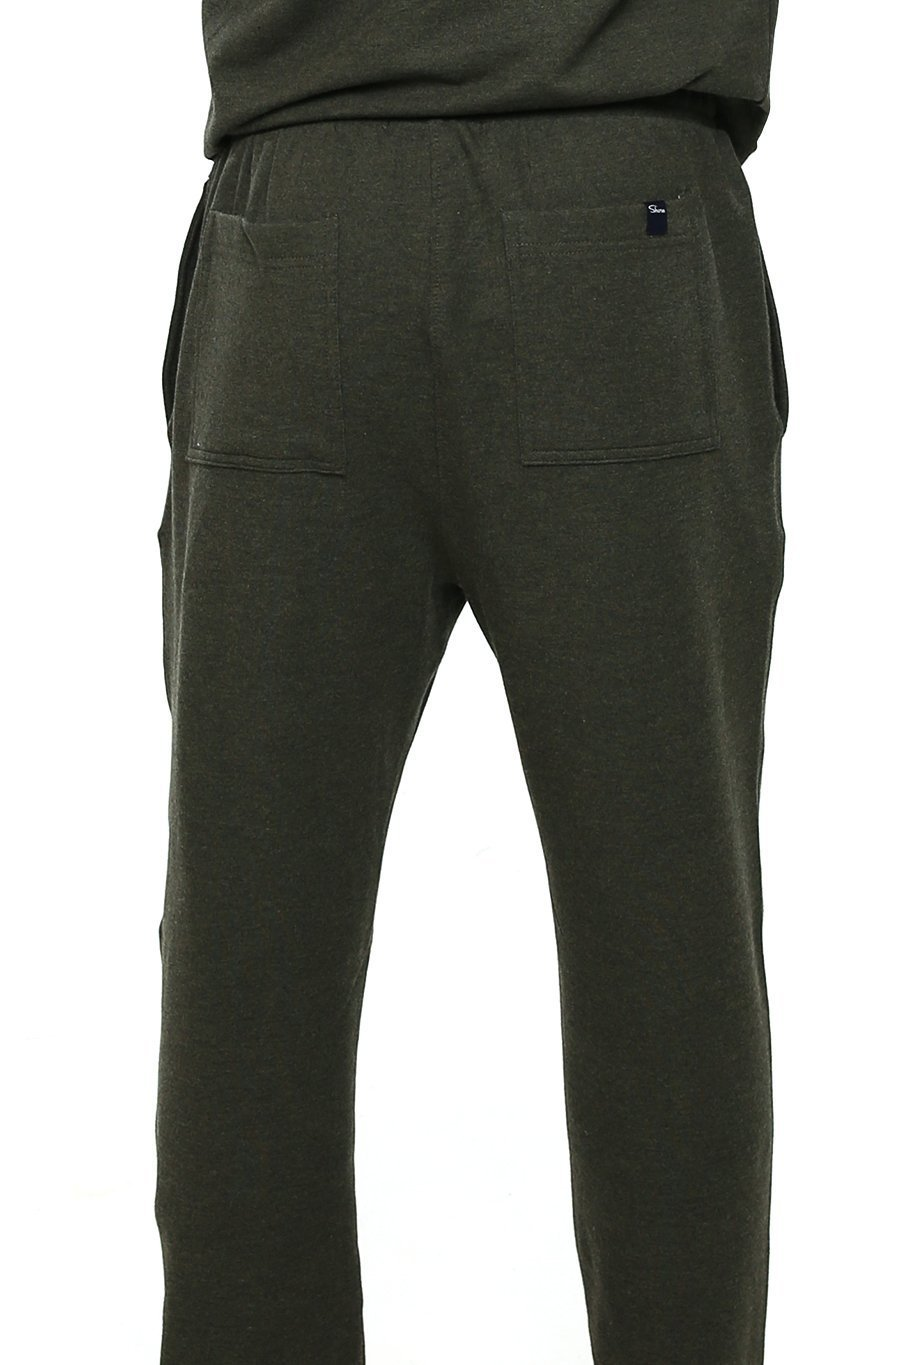 Long Beach Fleece Jogger - Forest - Shore